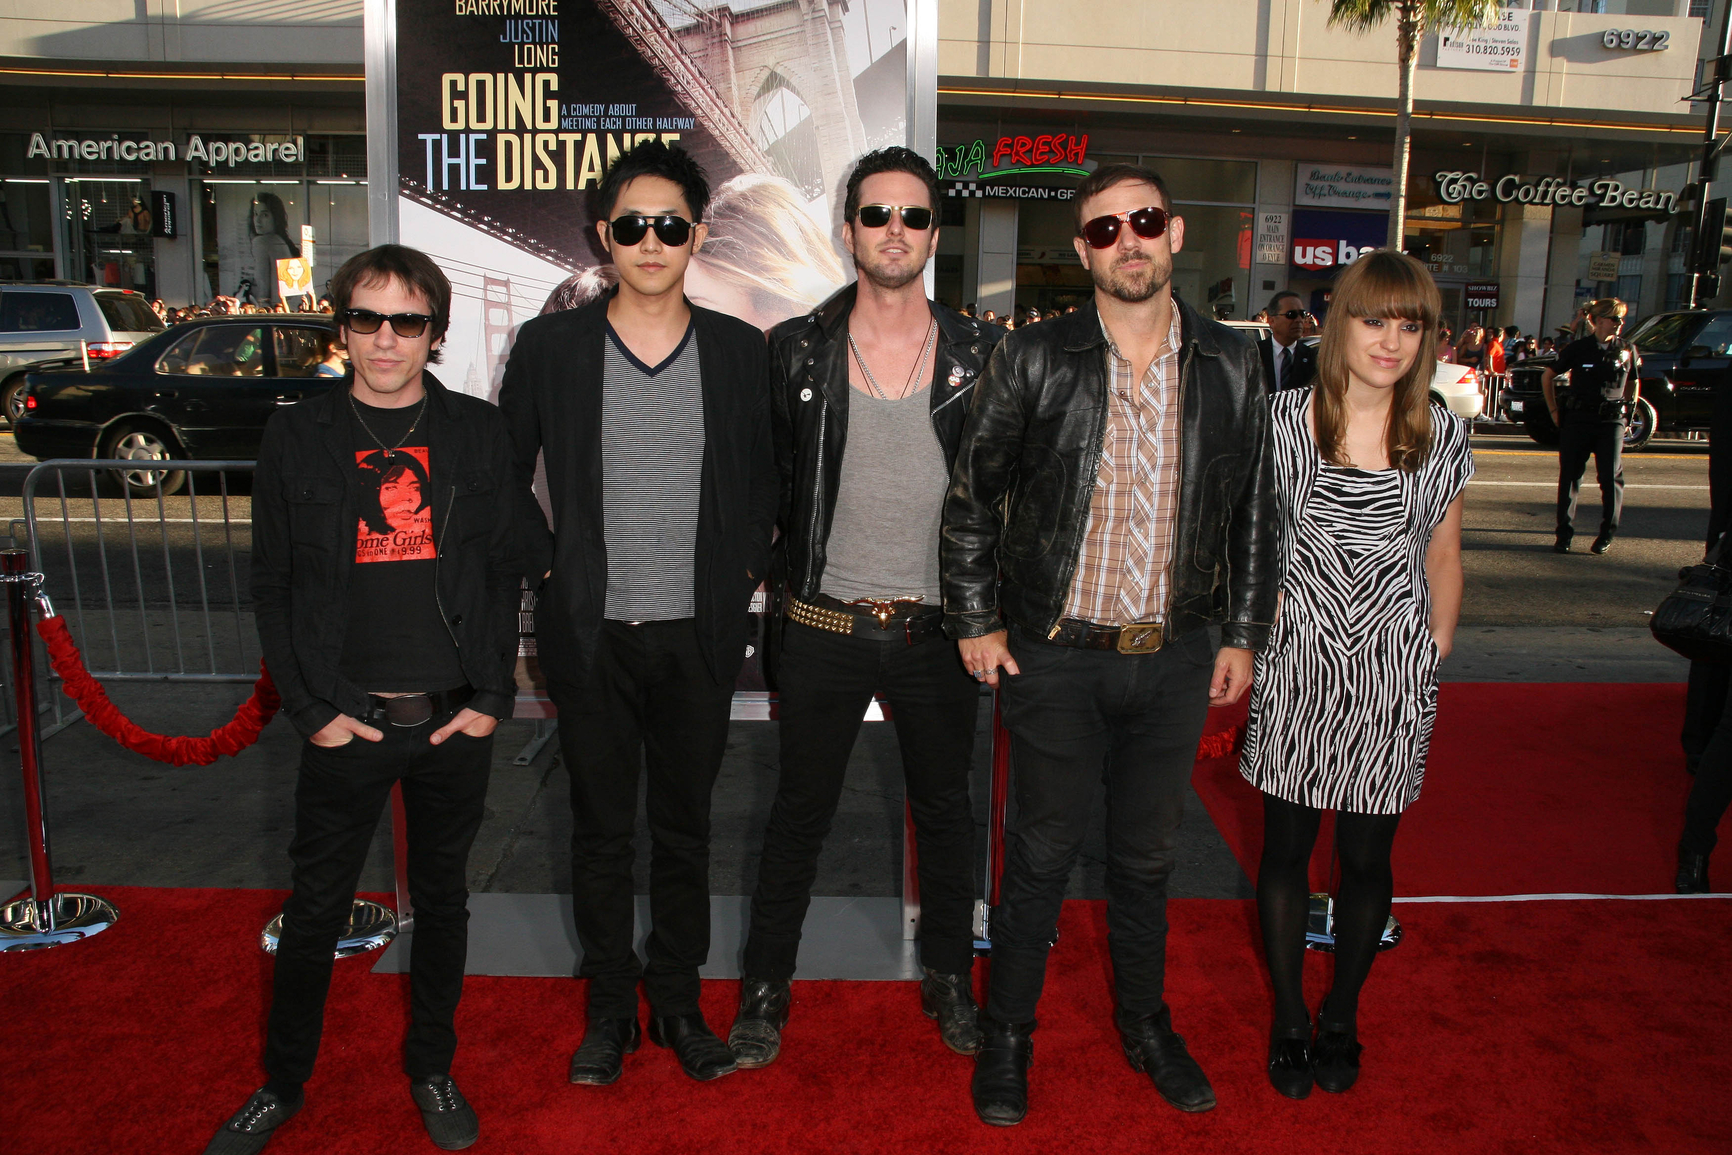 Win Tickets to The Airborne Toxic Event